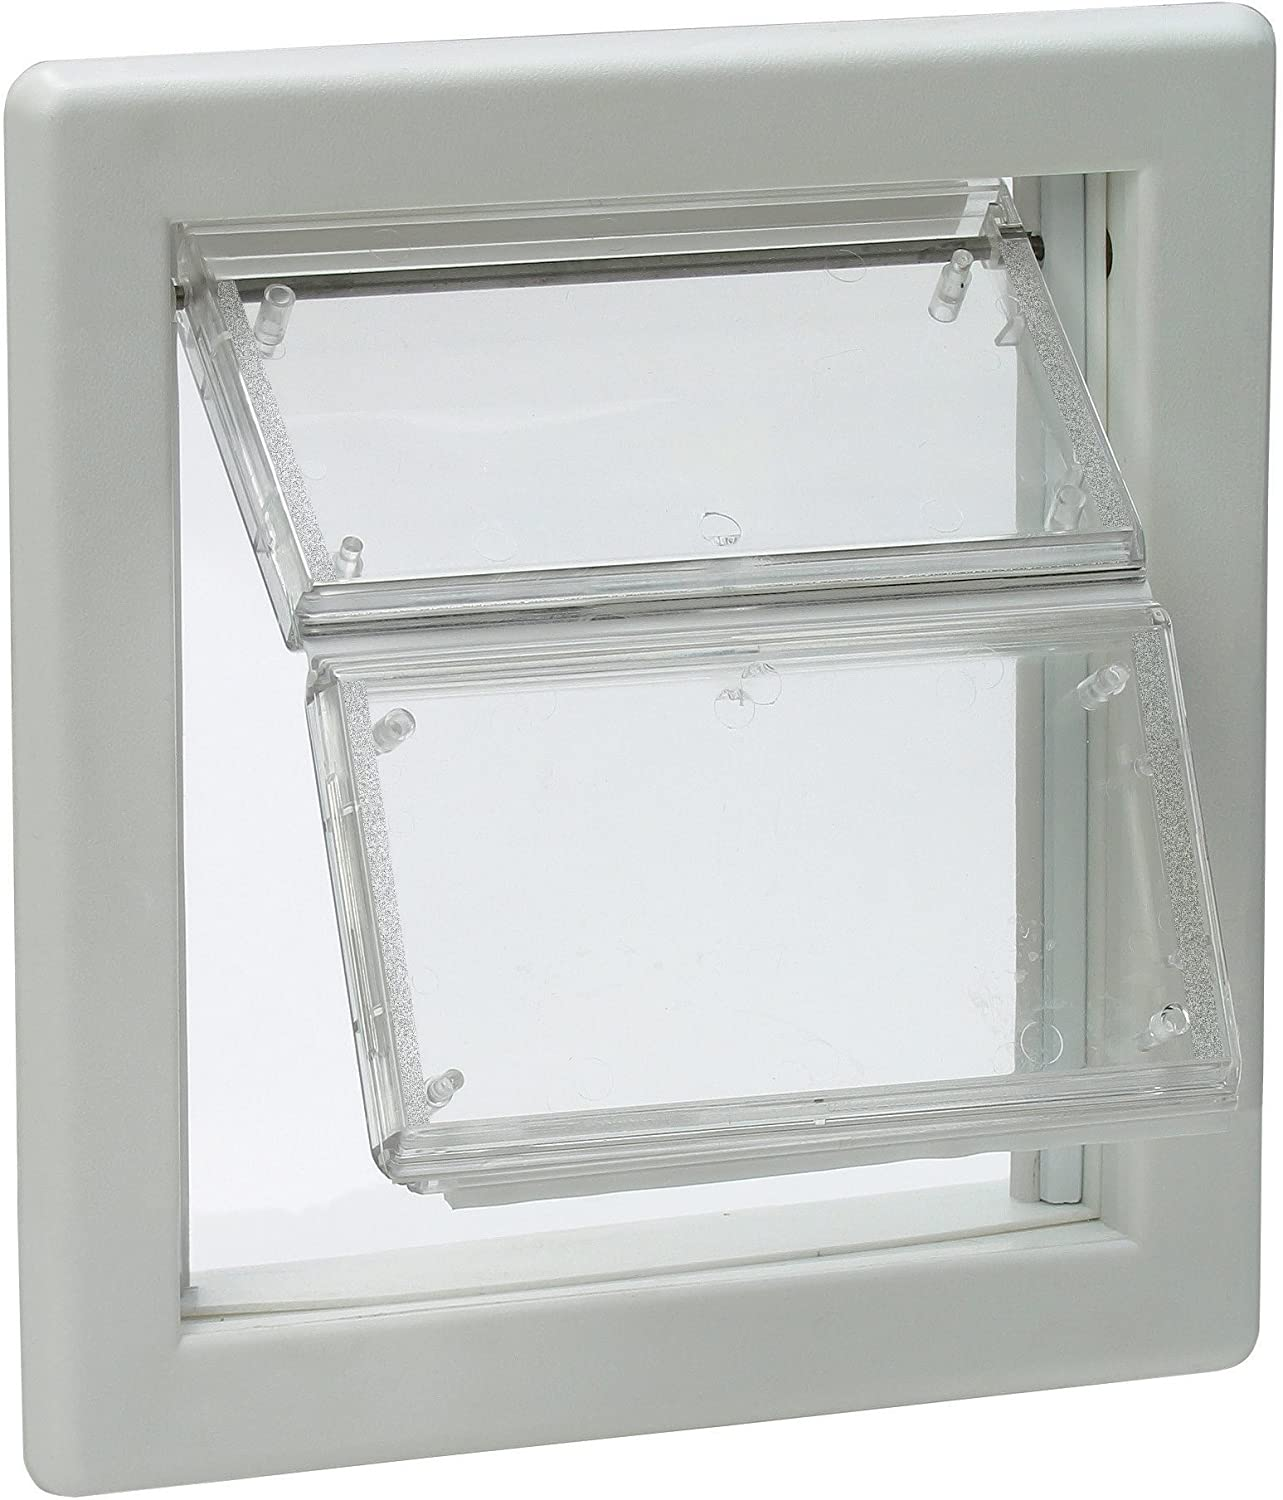 Ideal Pet Products Air Seal Pet Door with Telescoping Frame